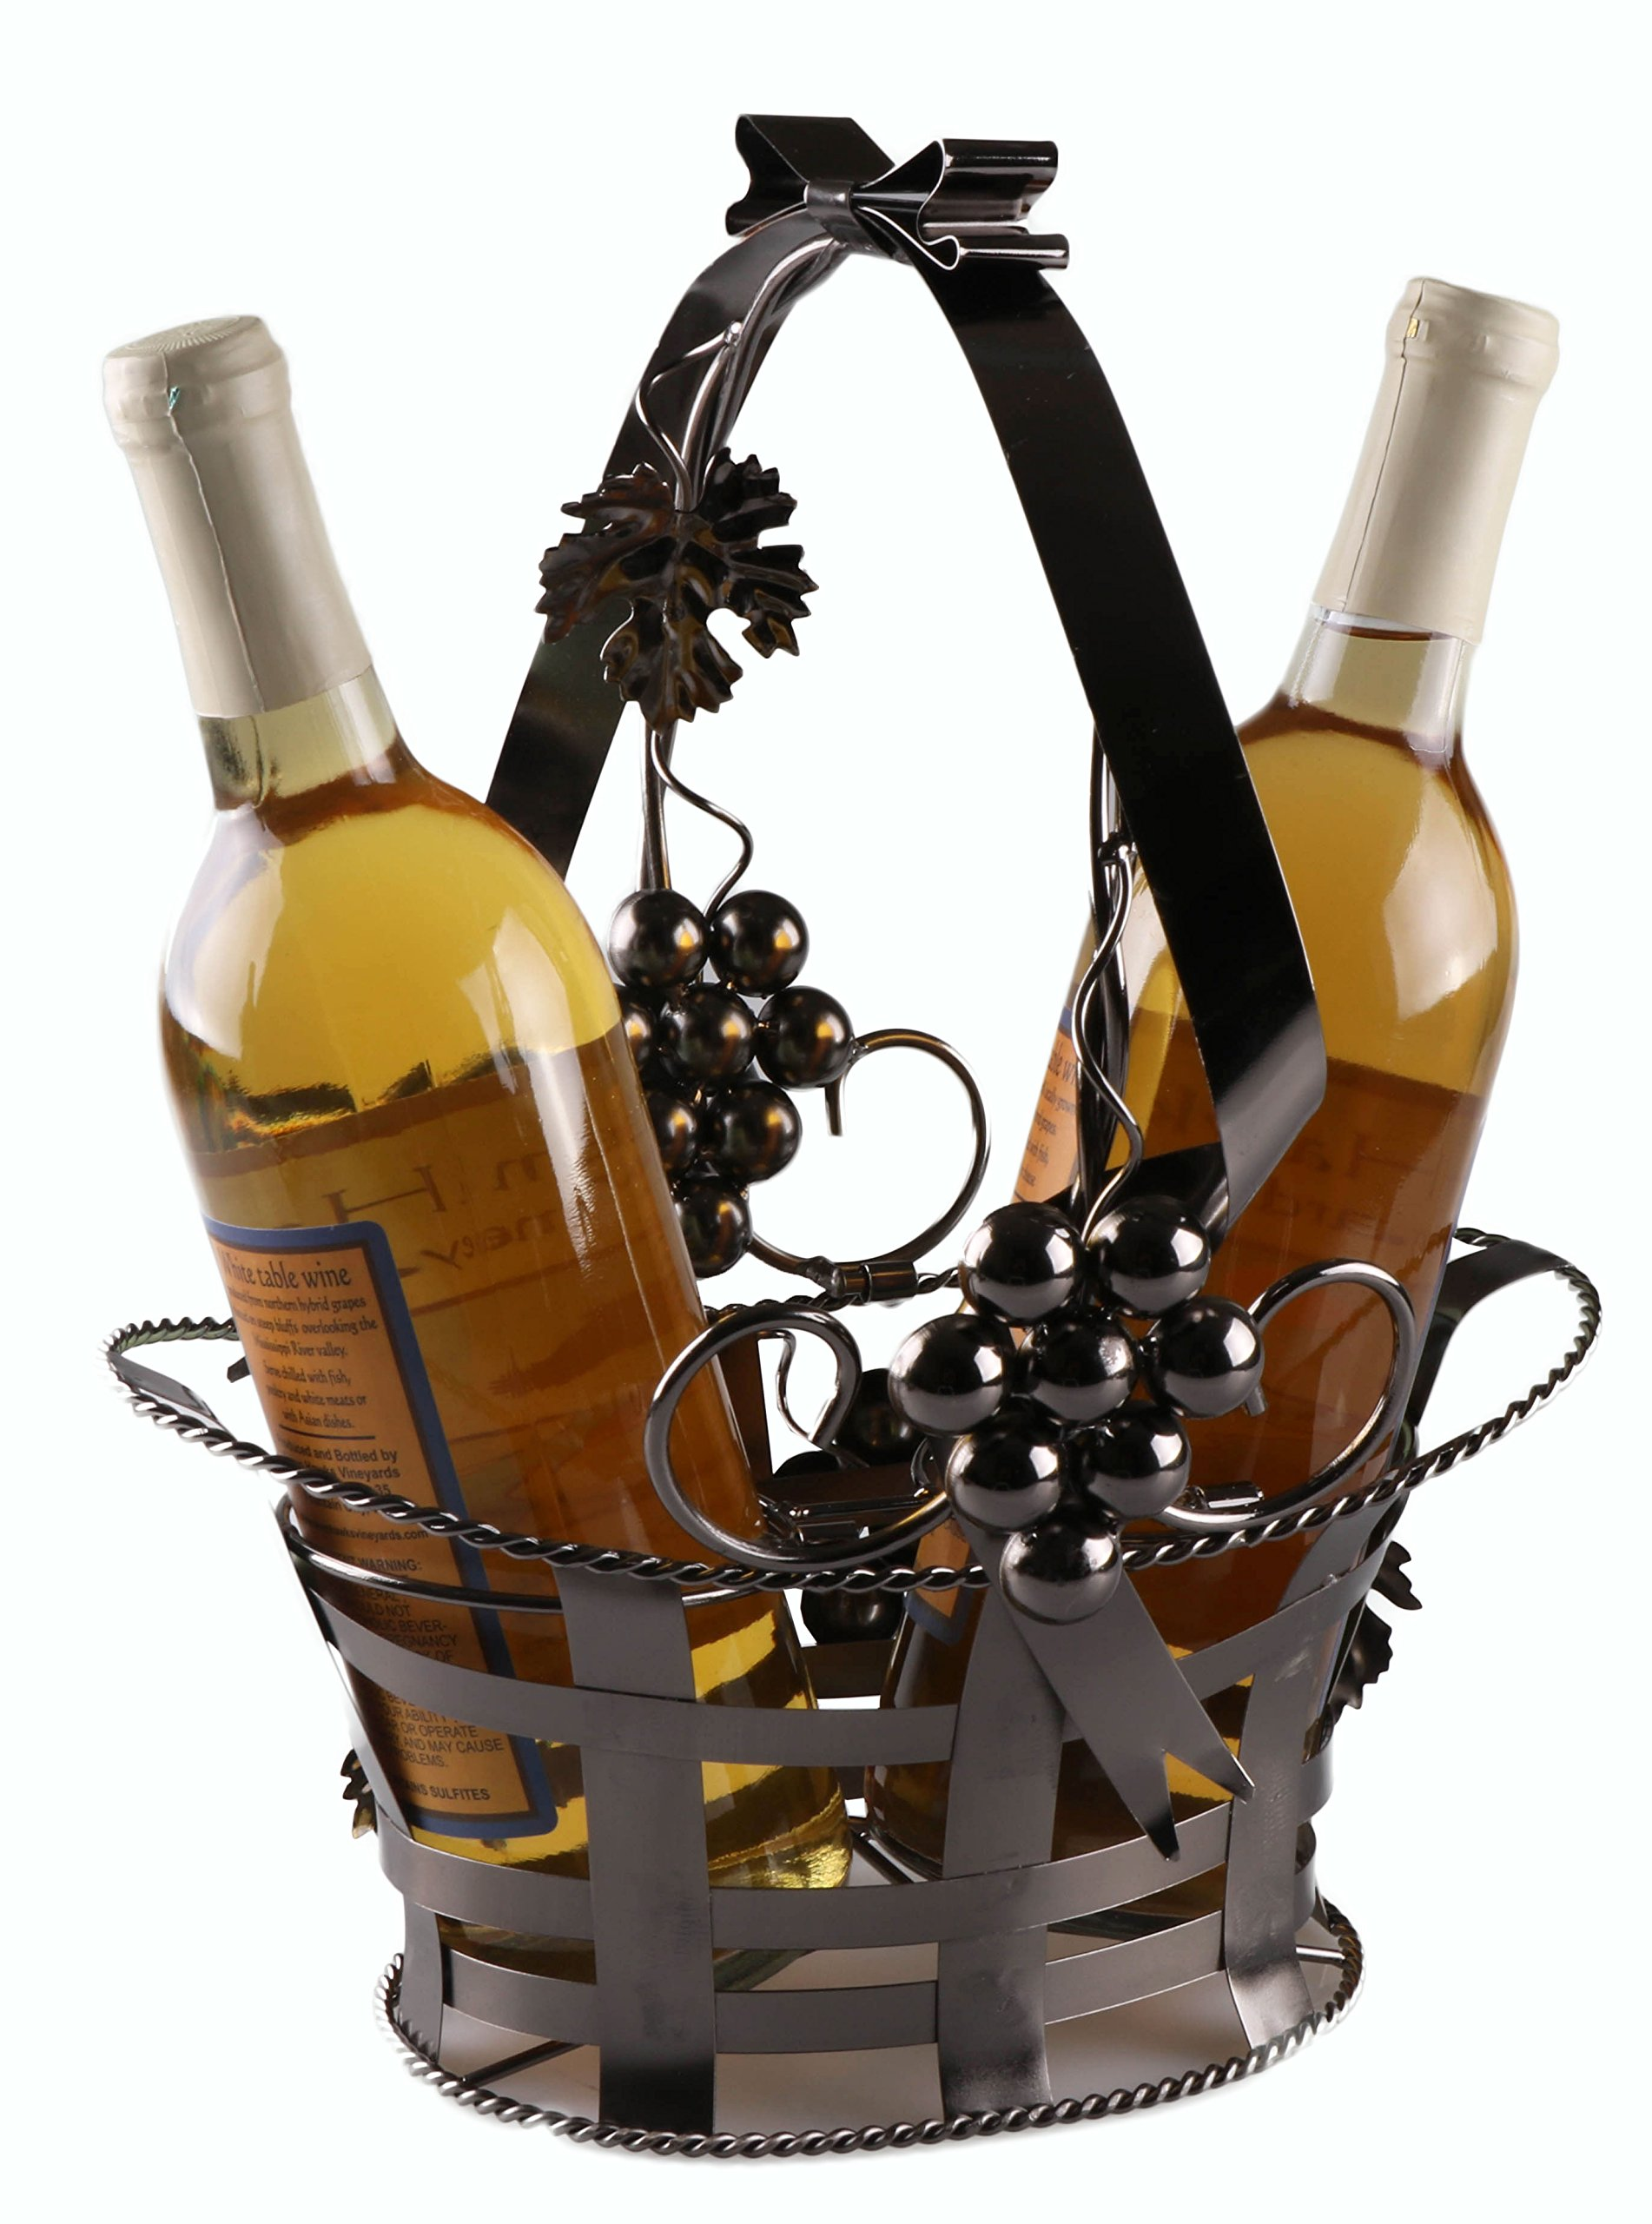 Clever Creations Wine Bottle Gift Holder Premium Metal Design Easily Fits 2 Bottles | Decorative Design | Great Gift Basket for Your Favorite Wine | Wide Stable Base | Grape Arbor Motif | Brown by Clever Creations